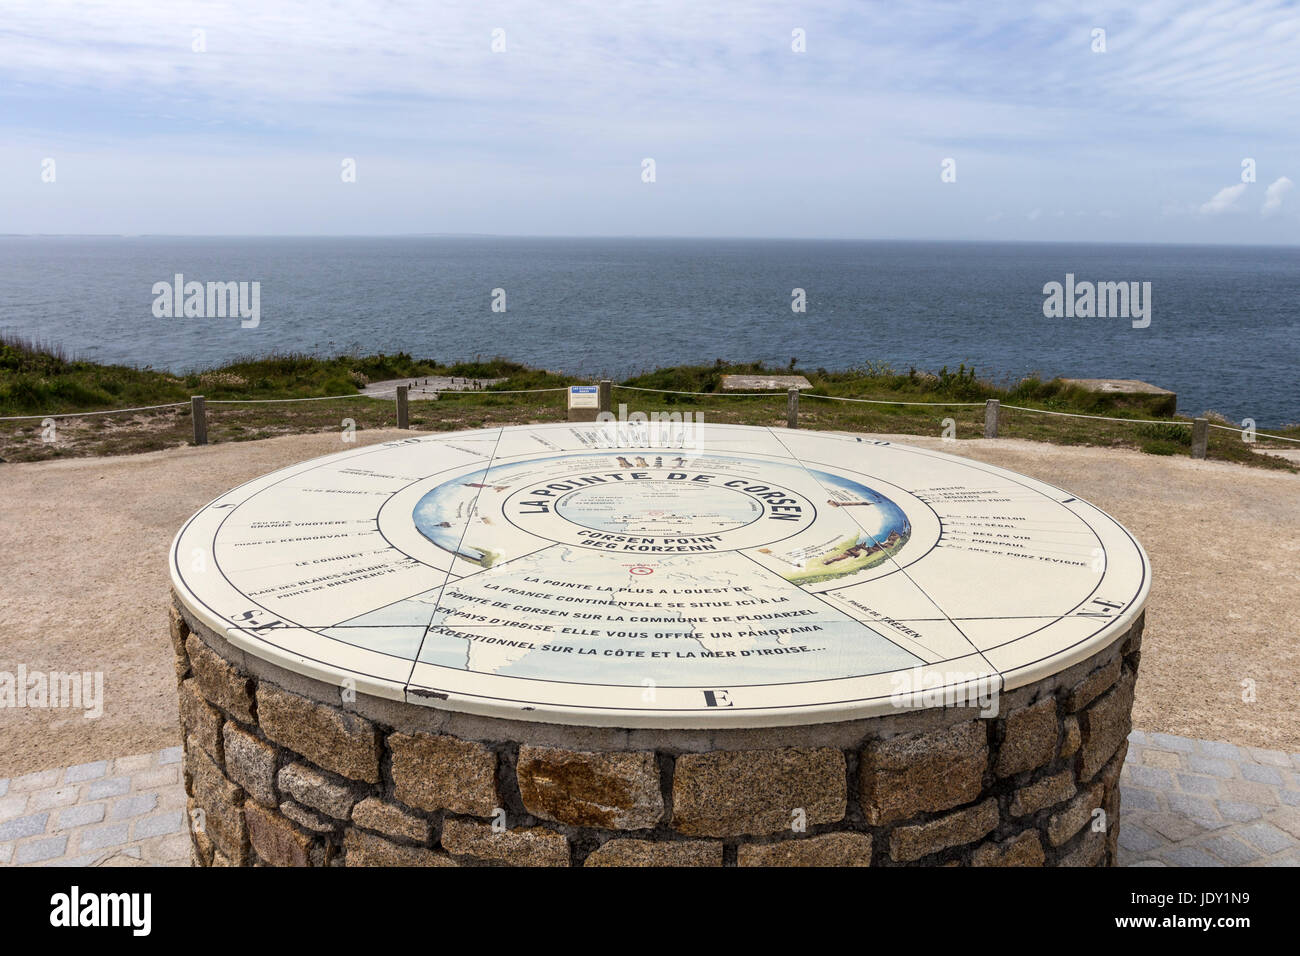 Interpretation Table on the Pointe de Corsen Near Plouarazel, Finistere, Brittany, the Westernmost Point of Continental - Stock Image